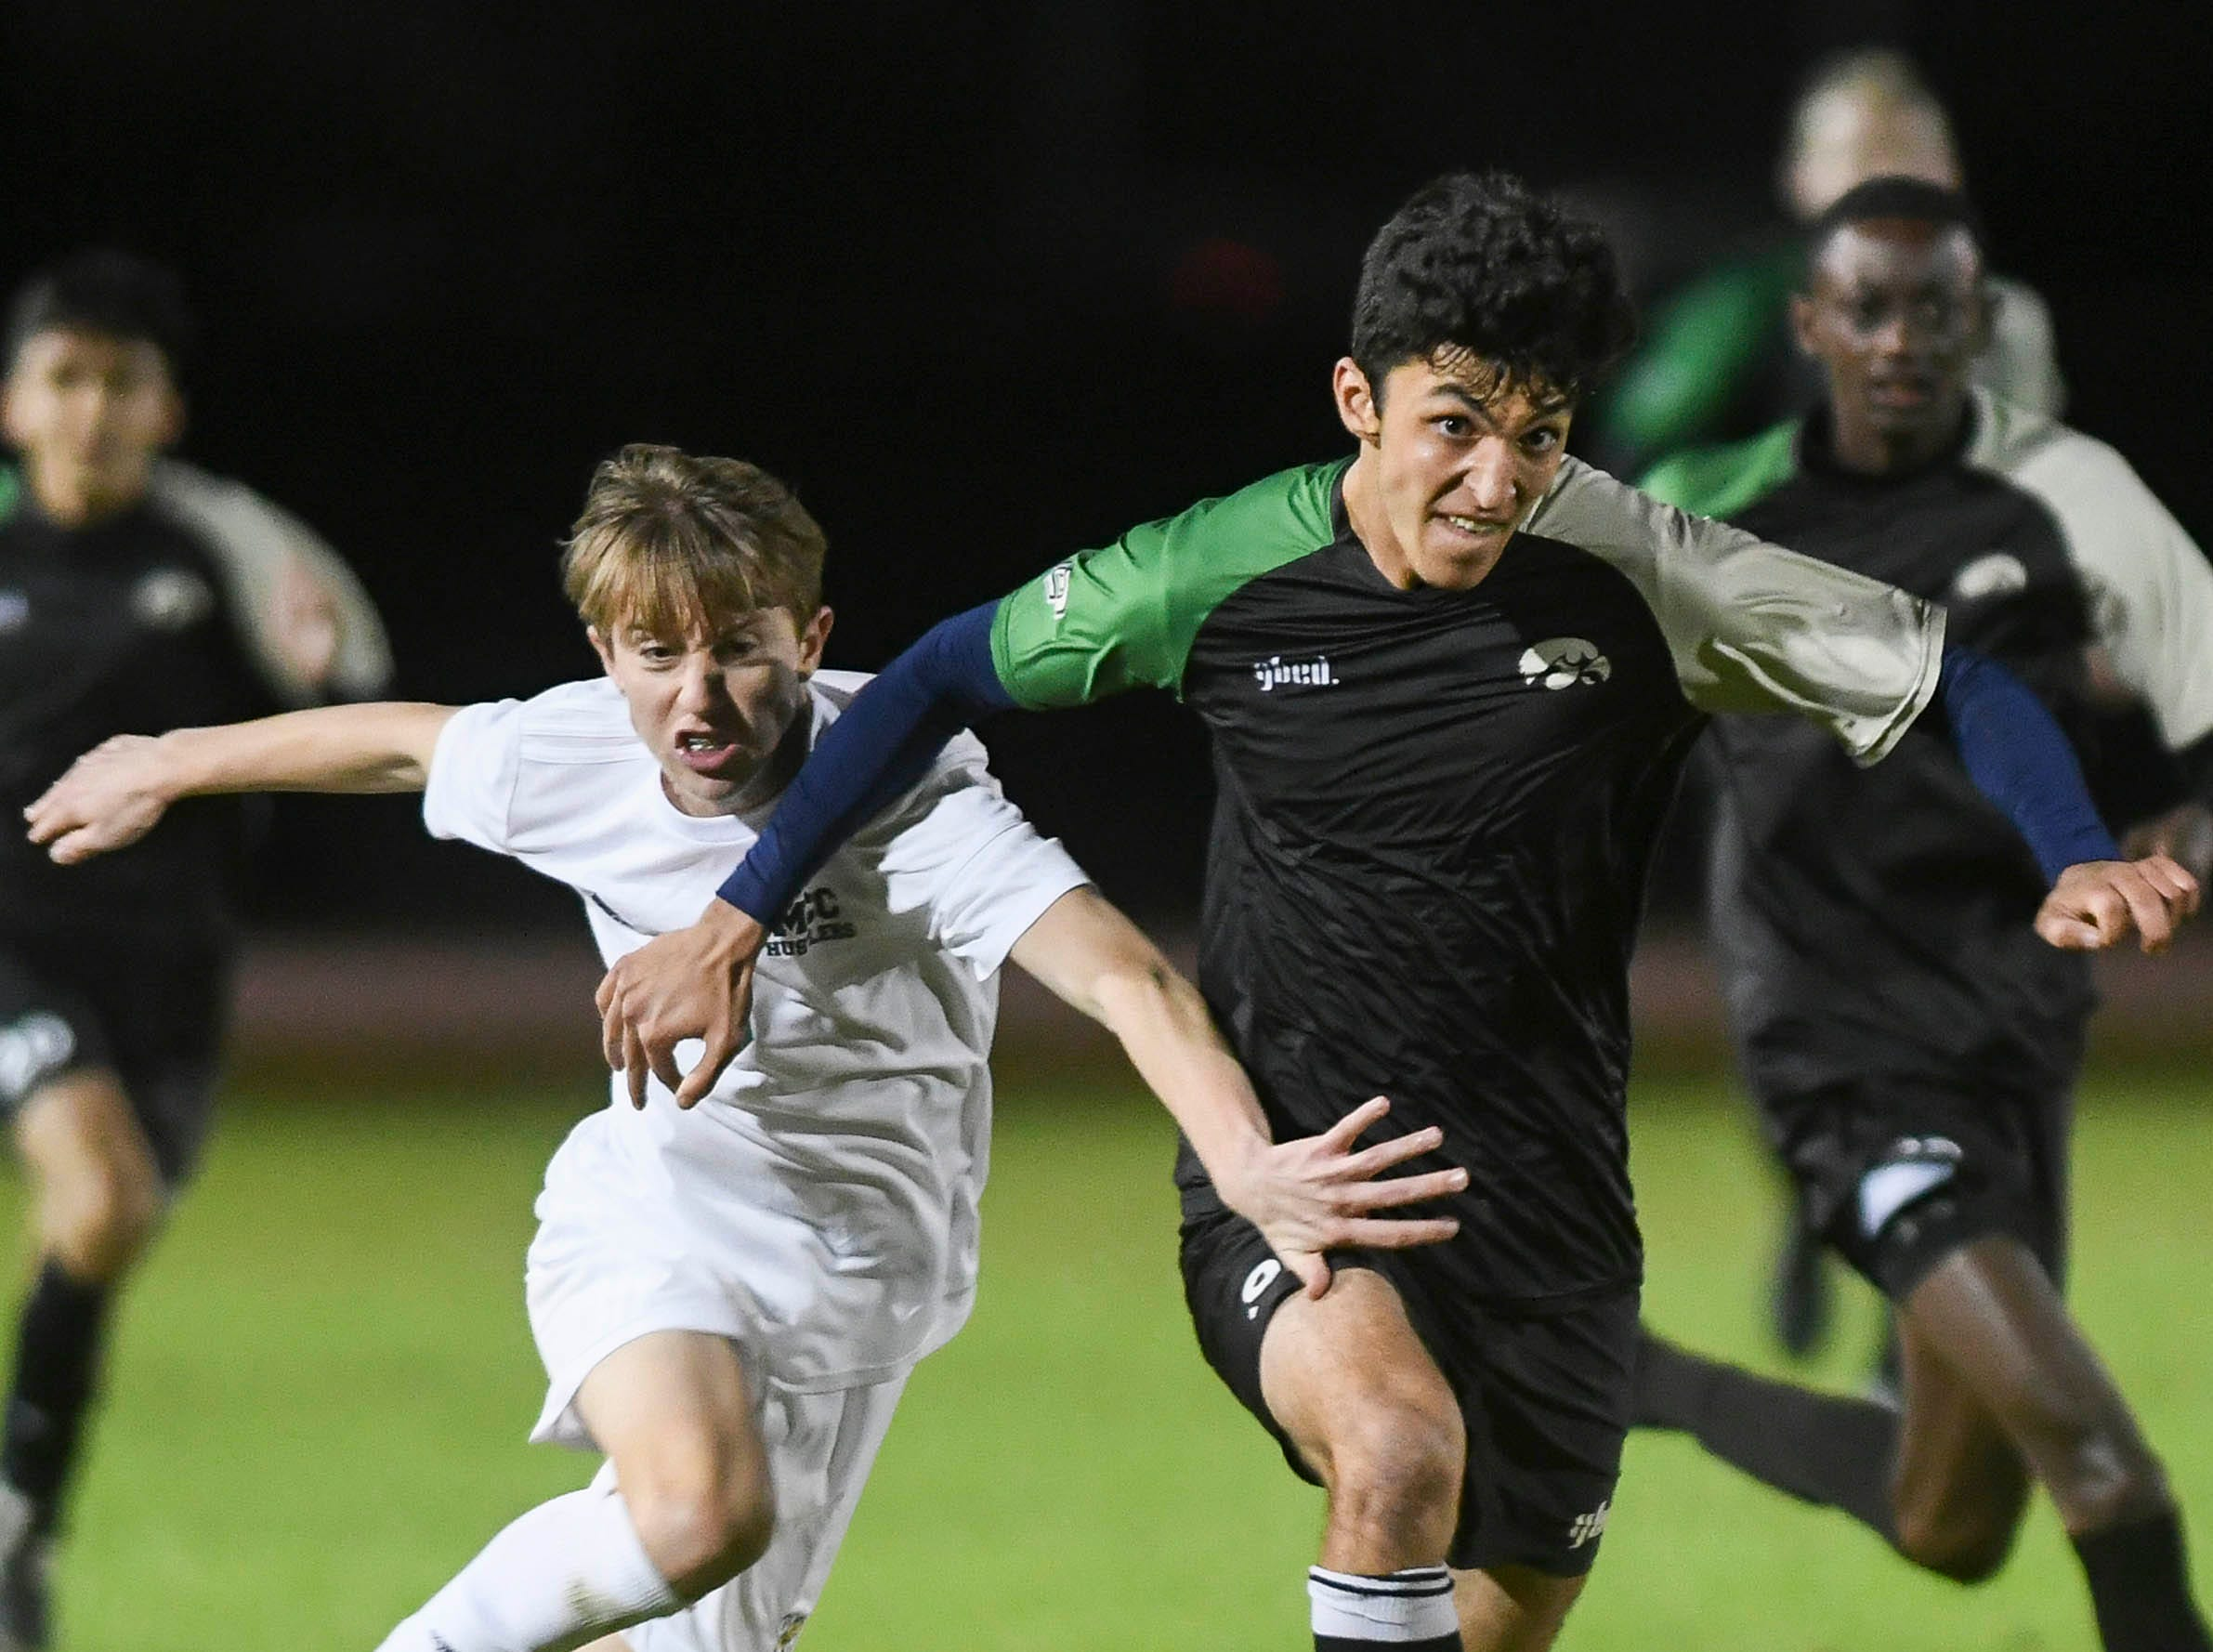 Seamus Wixted of Melbourne Central Catholic and Kia Mohajeri of Viera chase the ball during Friday's game in Viera